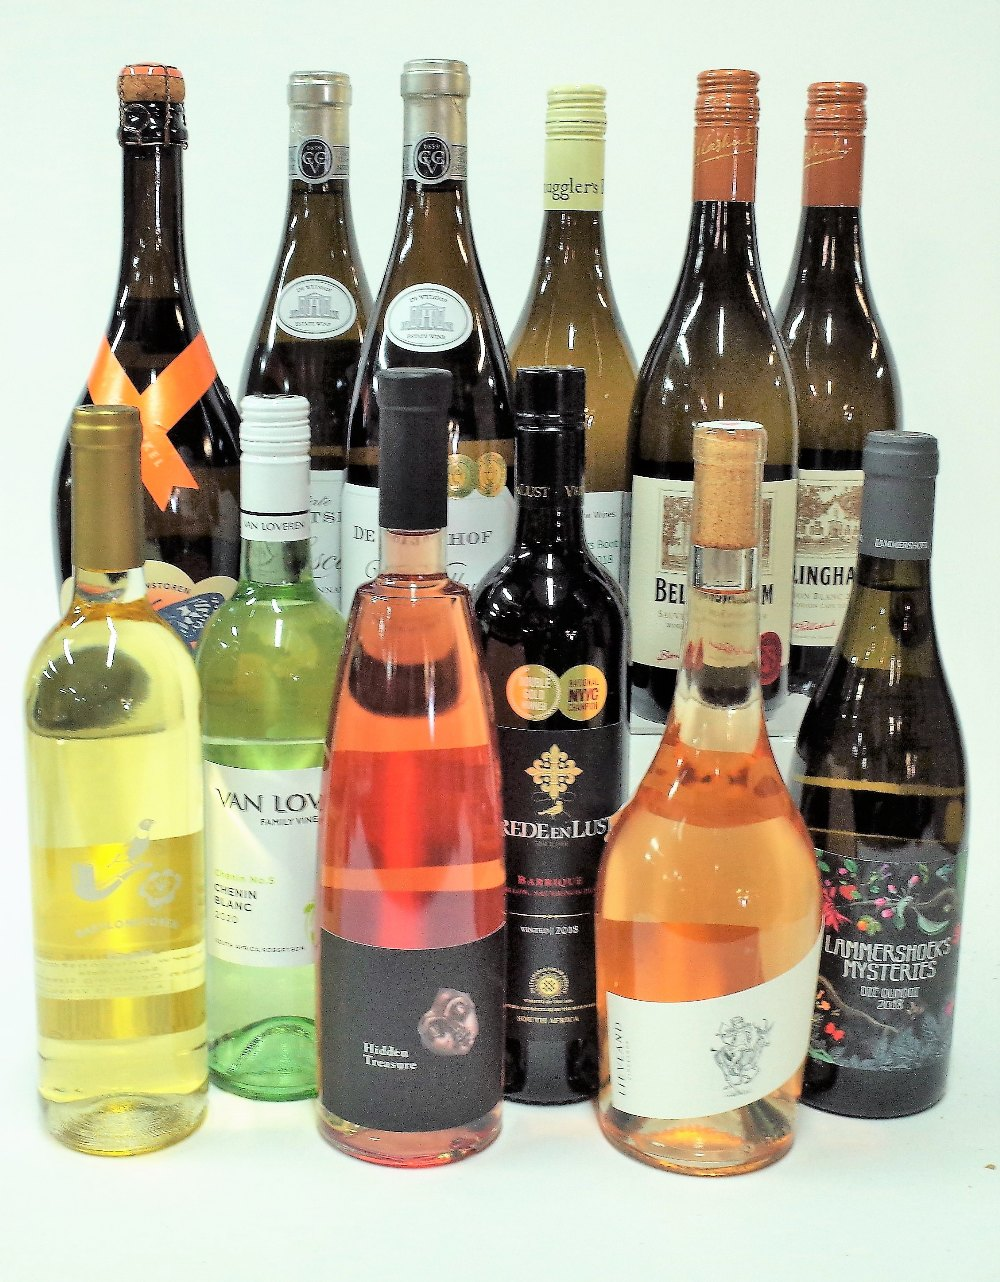 12 BOTTLES SOUTH AFRICAN WHITE WINE - Image 2 of 2